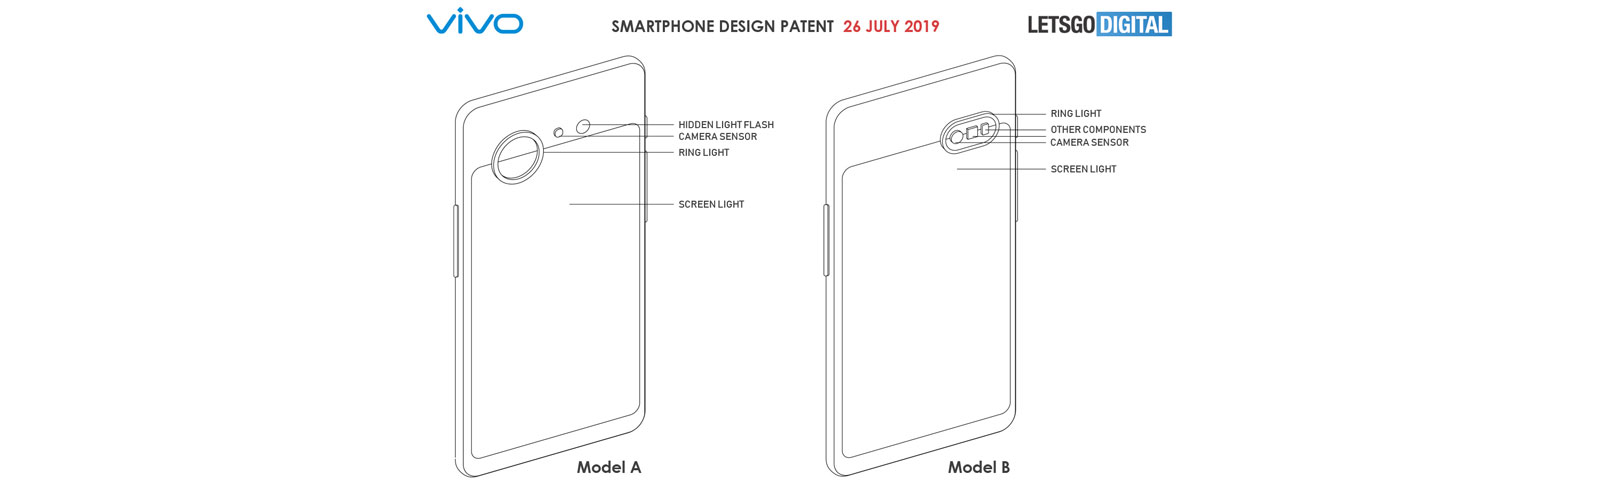 Vivo receives patents for two Dual Display smartphones